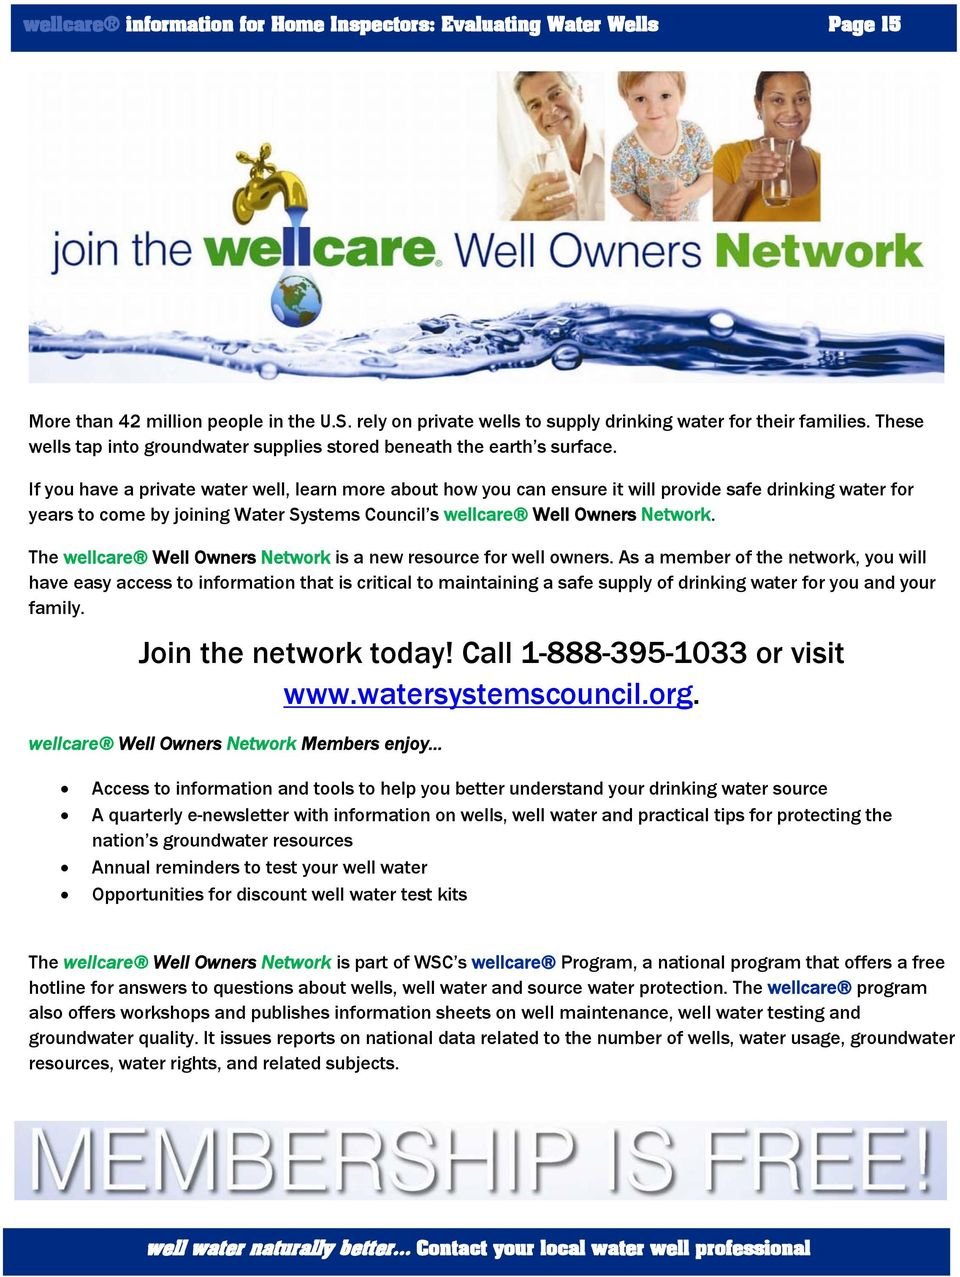 If you have a private water well, learn more about how you can ensure it will provide safe drinking water for years to come by joining Water Systems Council s wellcare Well Owners Network.